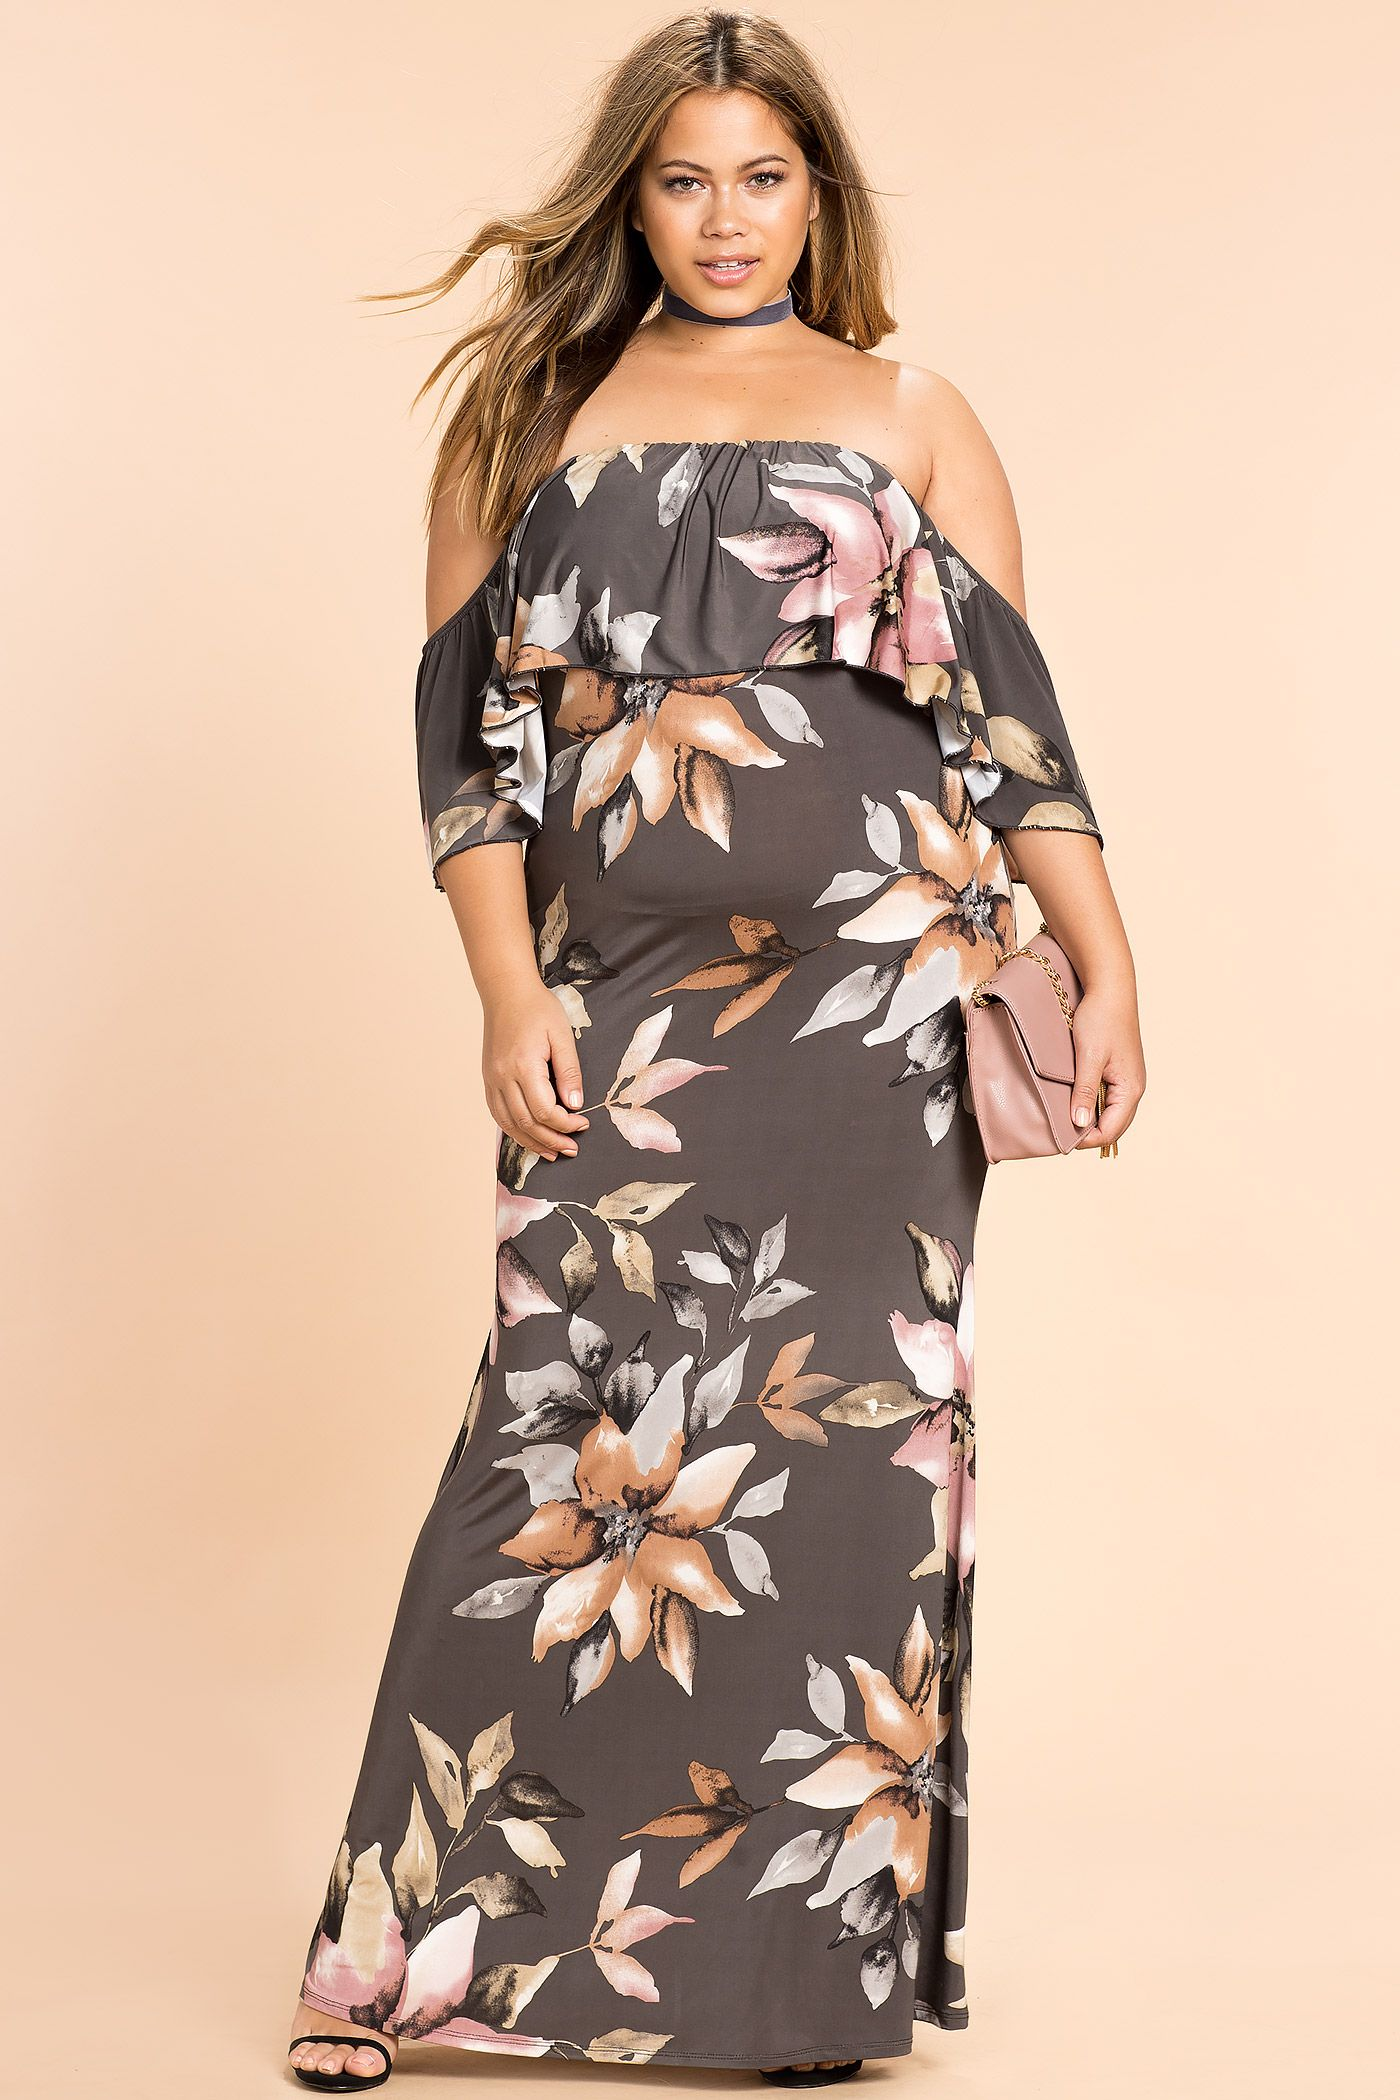 d08cefa2fbe3d4 Women's Plus Size Maxi Dresses | Floral Evening Off Shoulder Maxi Dress |  A'GACI